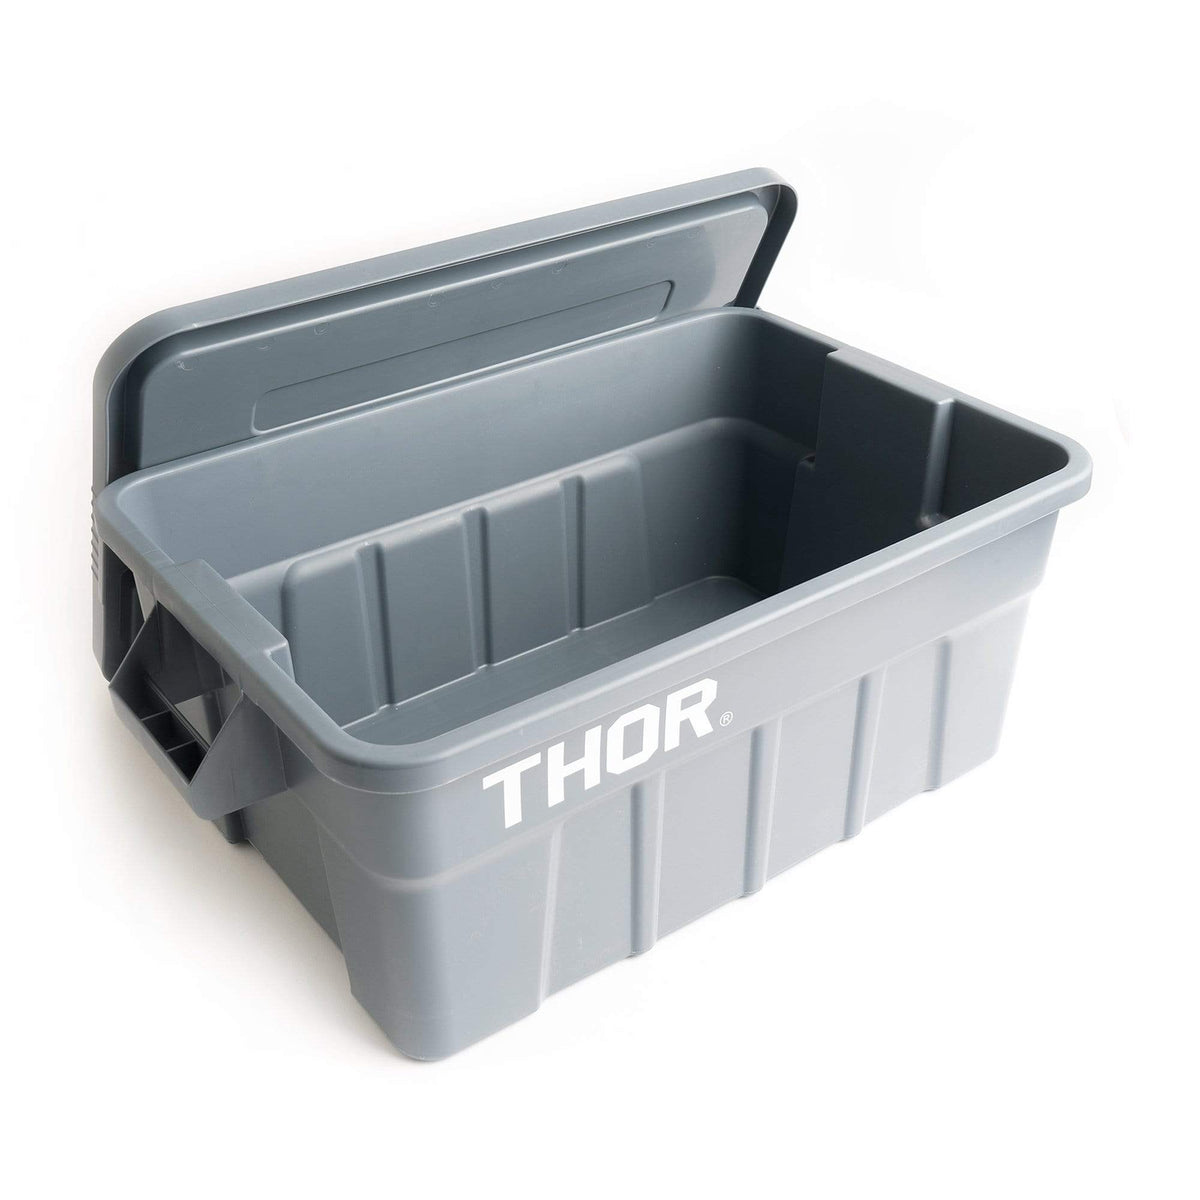 Thor Large Totes with Lid 53L Box